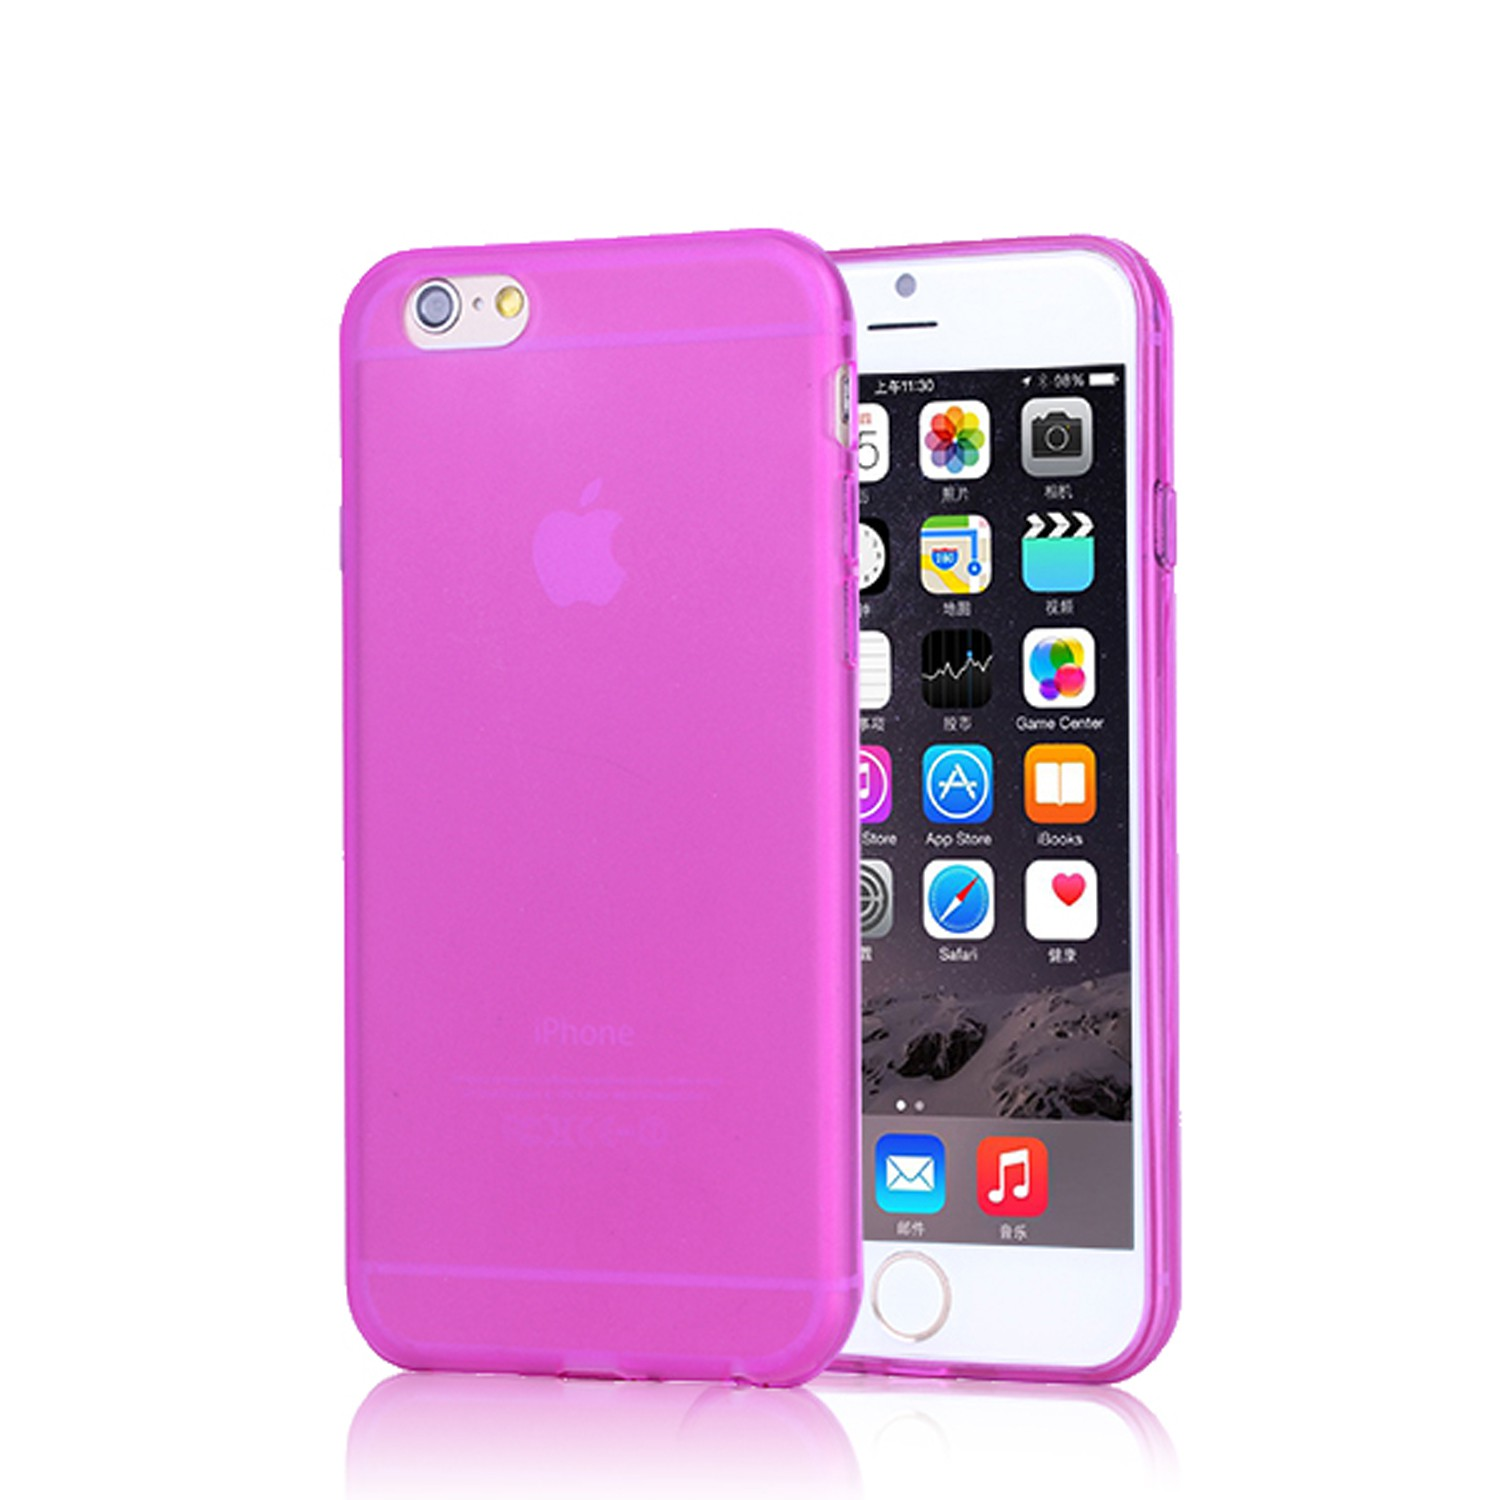 Yemota Pro Softcase iPhone 6s - Pink